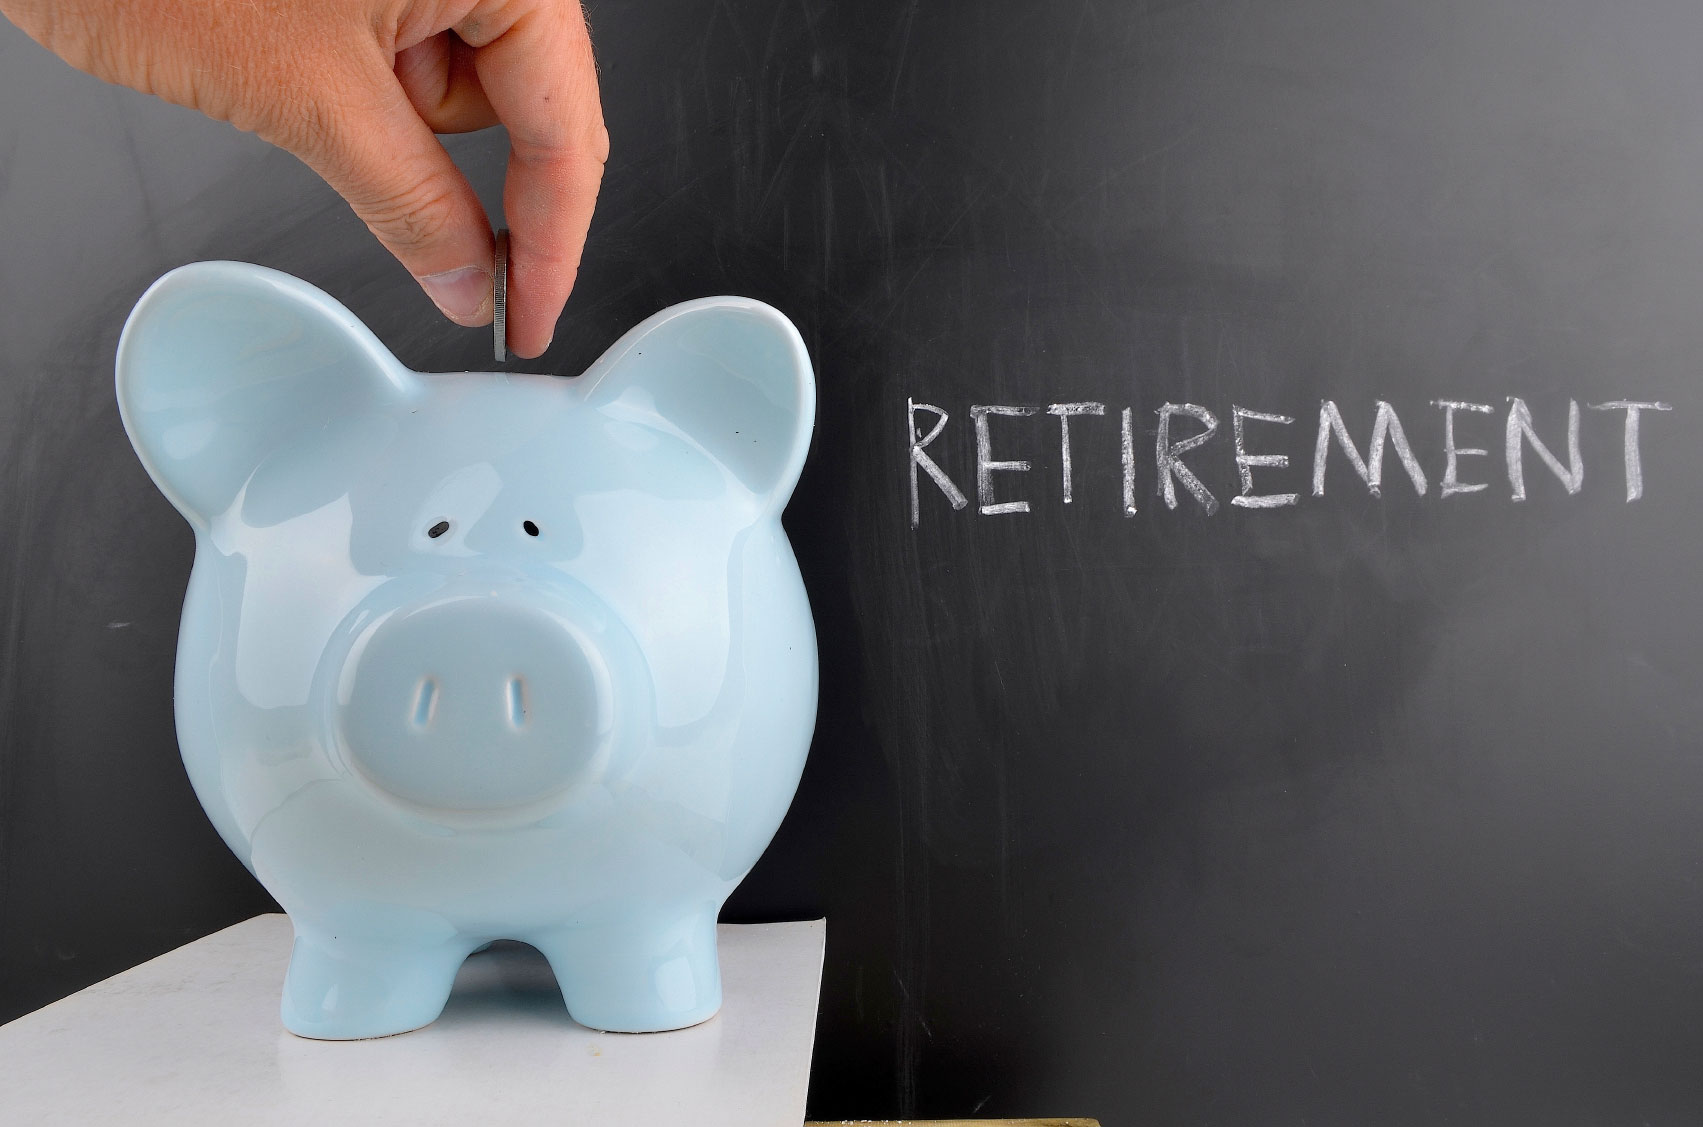 what you should know about 401k This is not your father's 401k: the retirement product you should know about by constance brinkley-badgett published march 30, 2017 personal finance creditcom facebook twitter but some programs provide for reimbursement should you die before accessing all of your money.